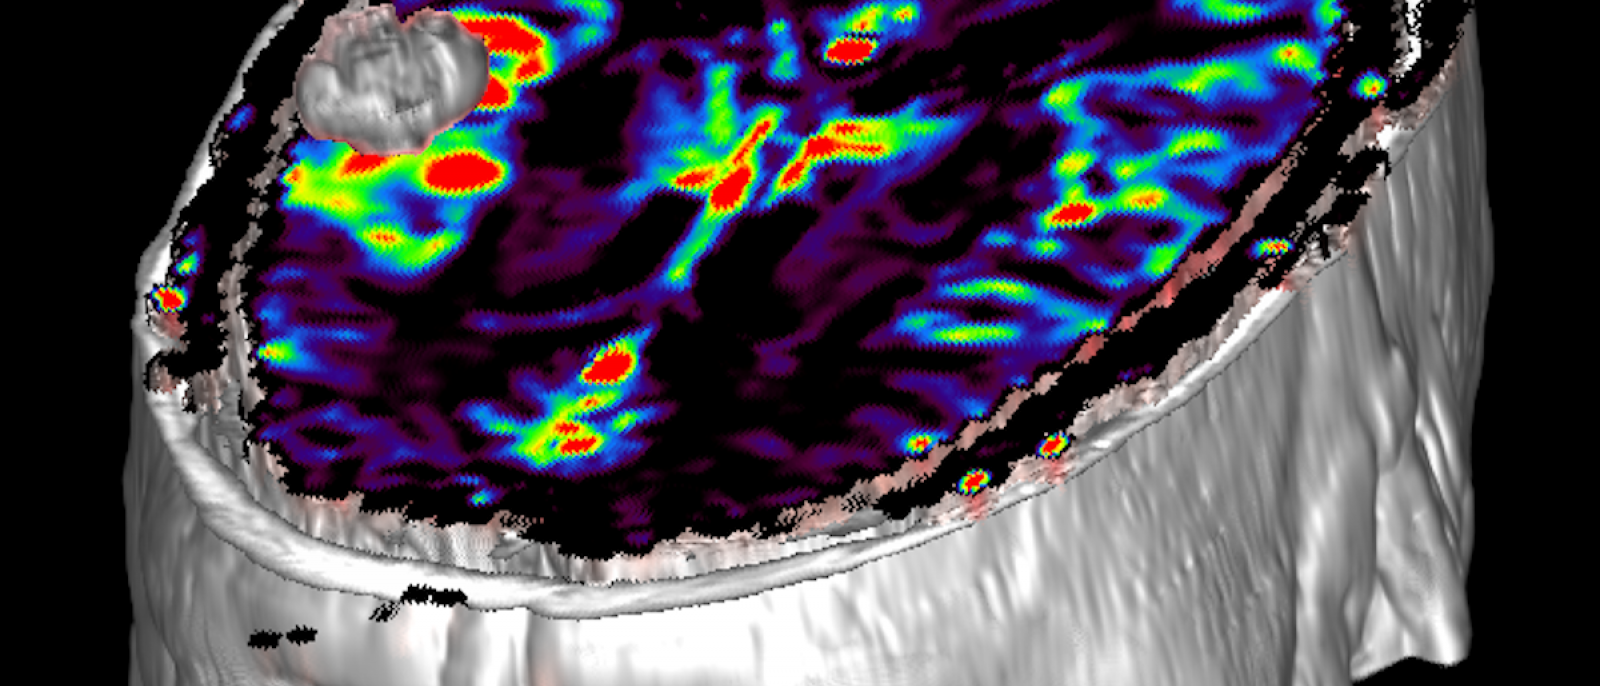 3D image of neuro regional cerebral blood volume map